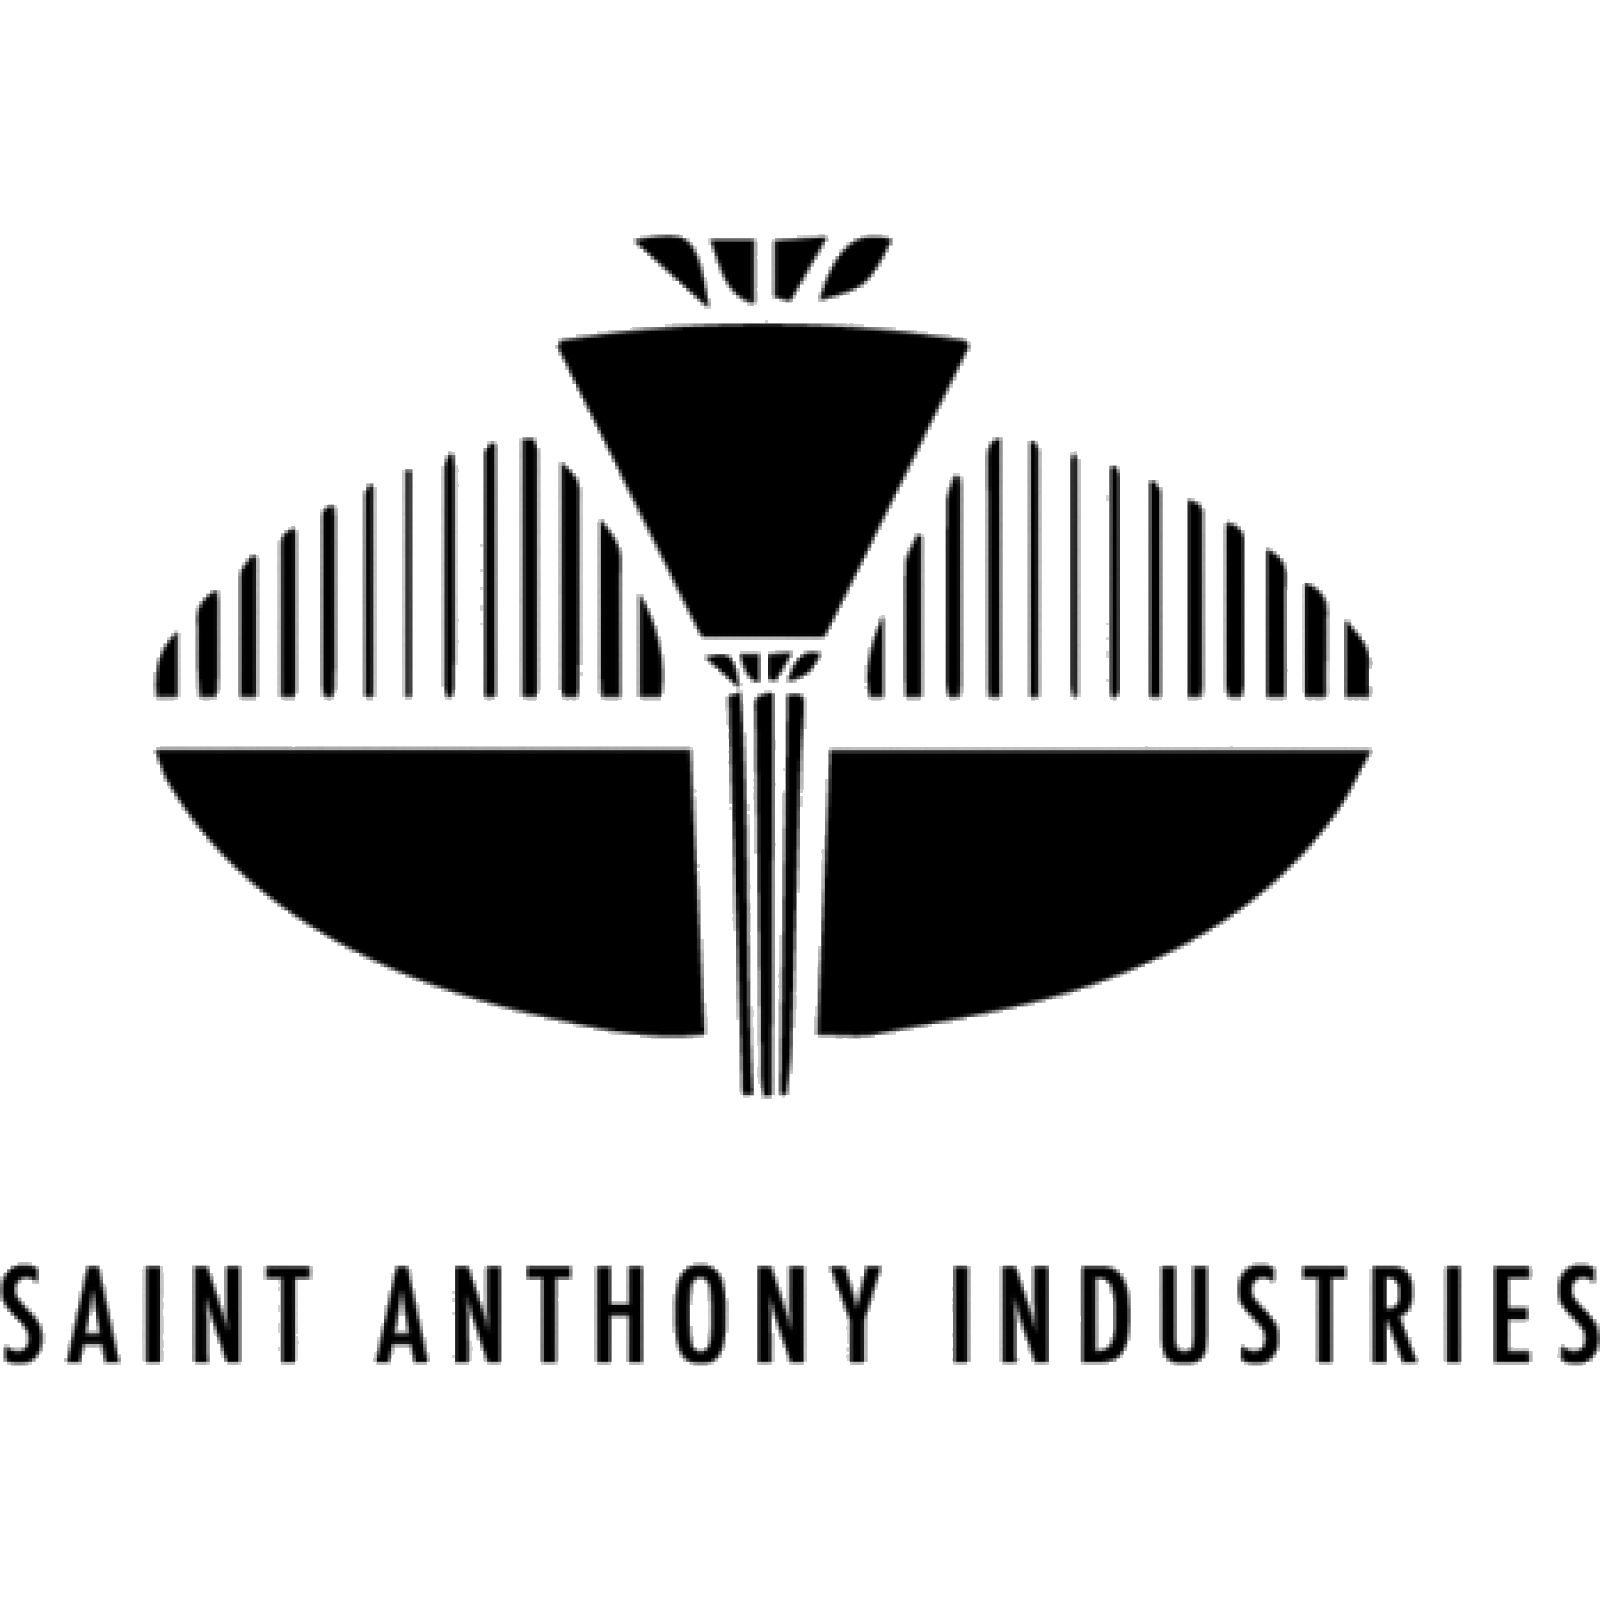 Saint Anthony industries